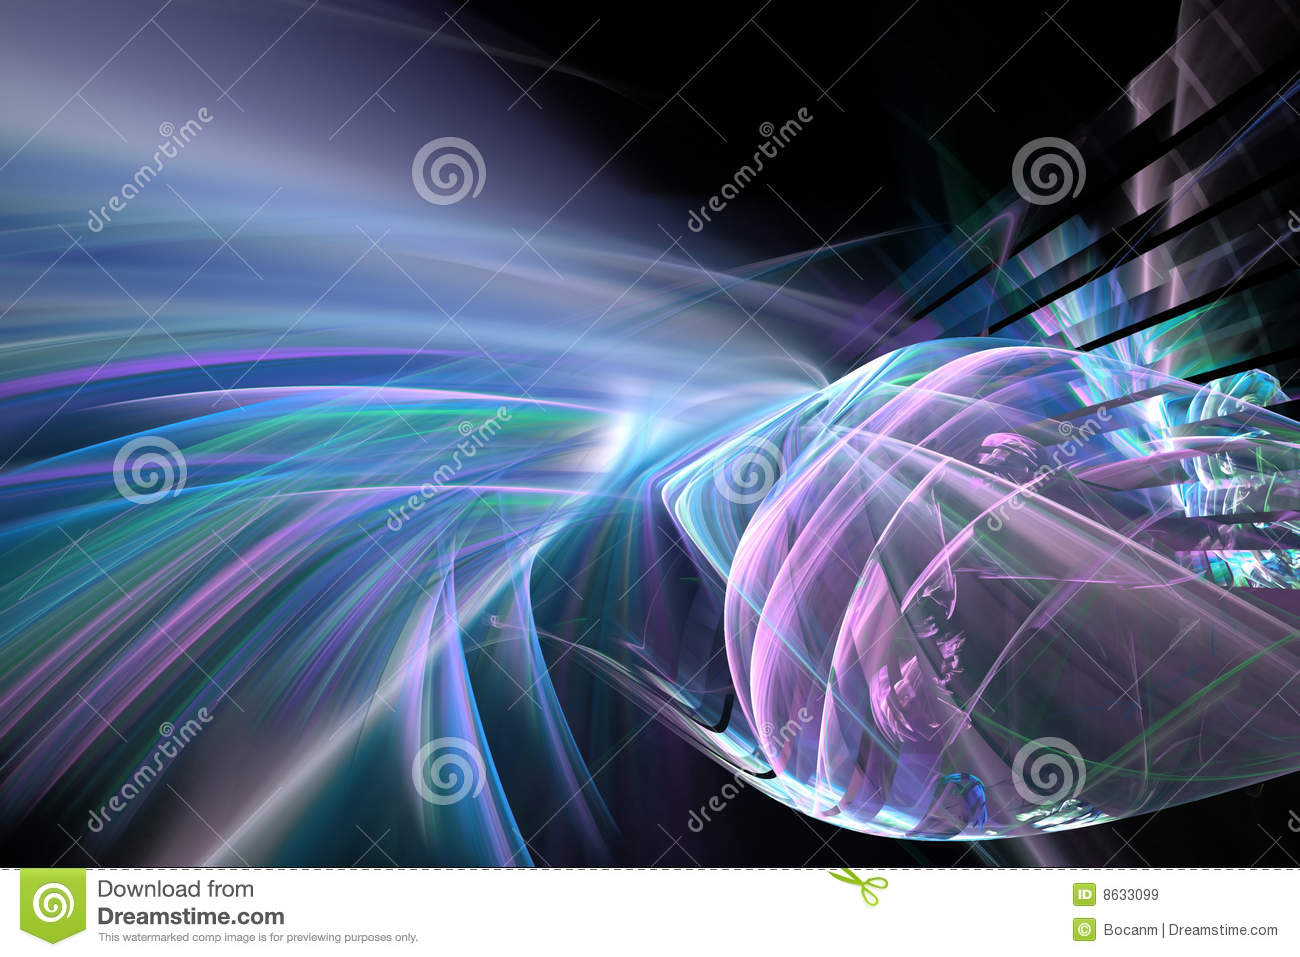 Abstract Futuristic Fractal Background Royalty Free Stock ...